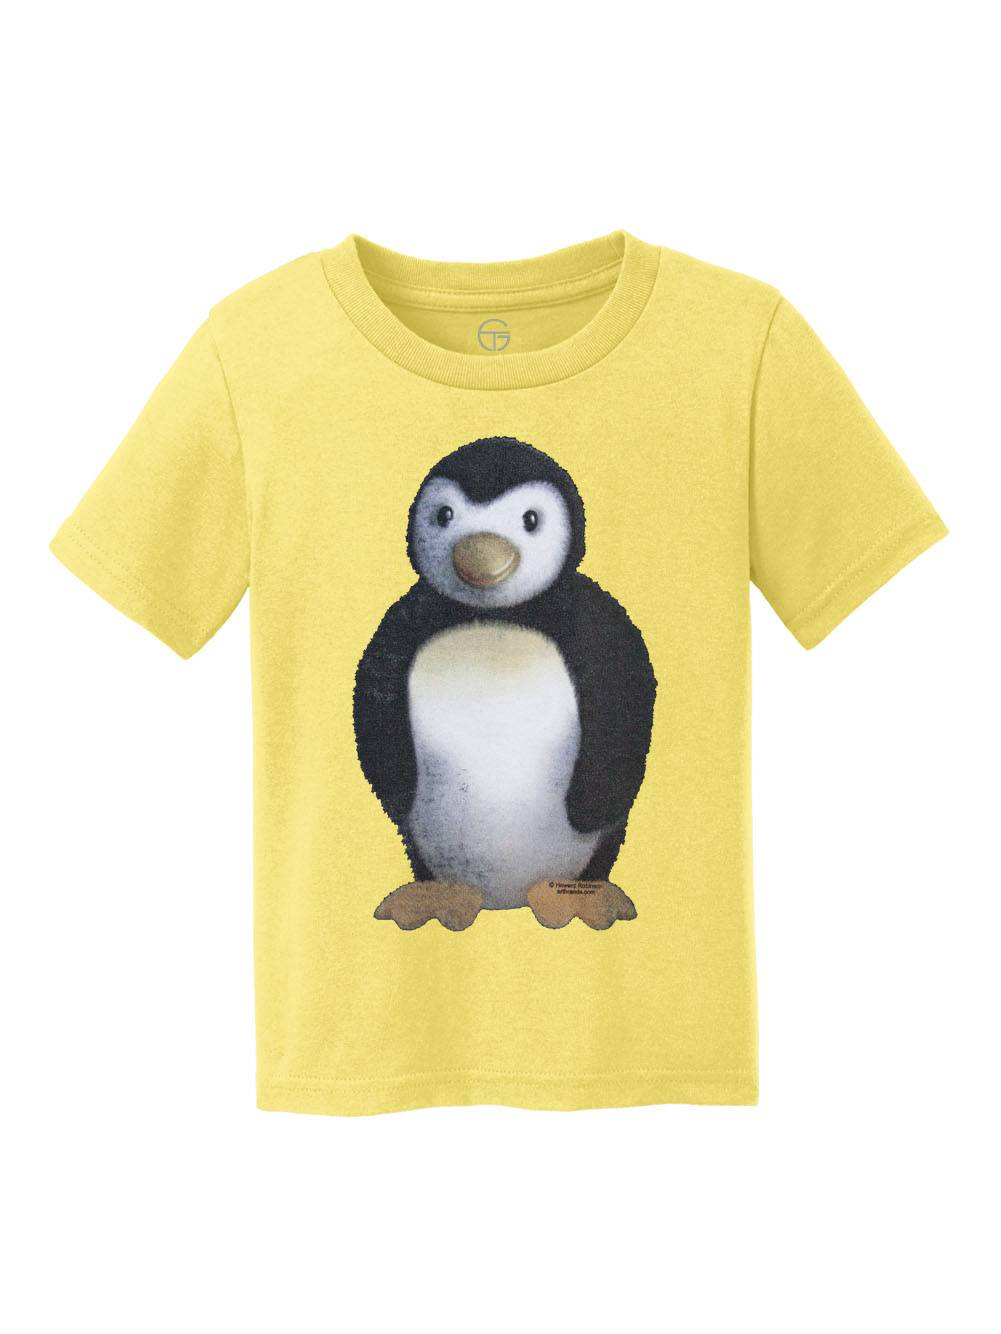 Fuzzy Penguin Youth Cotton T-Shirt